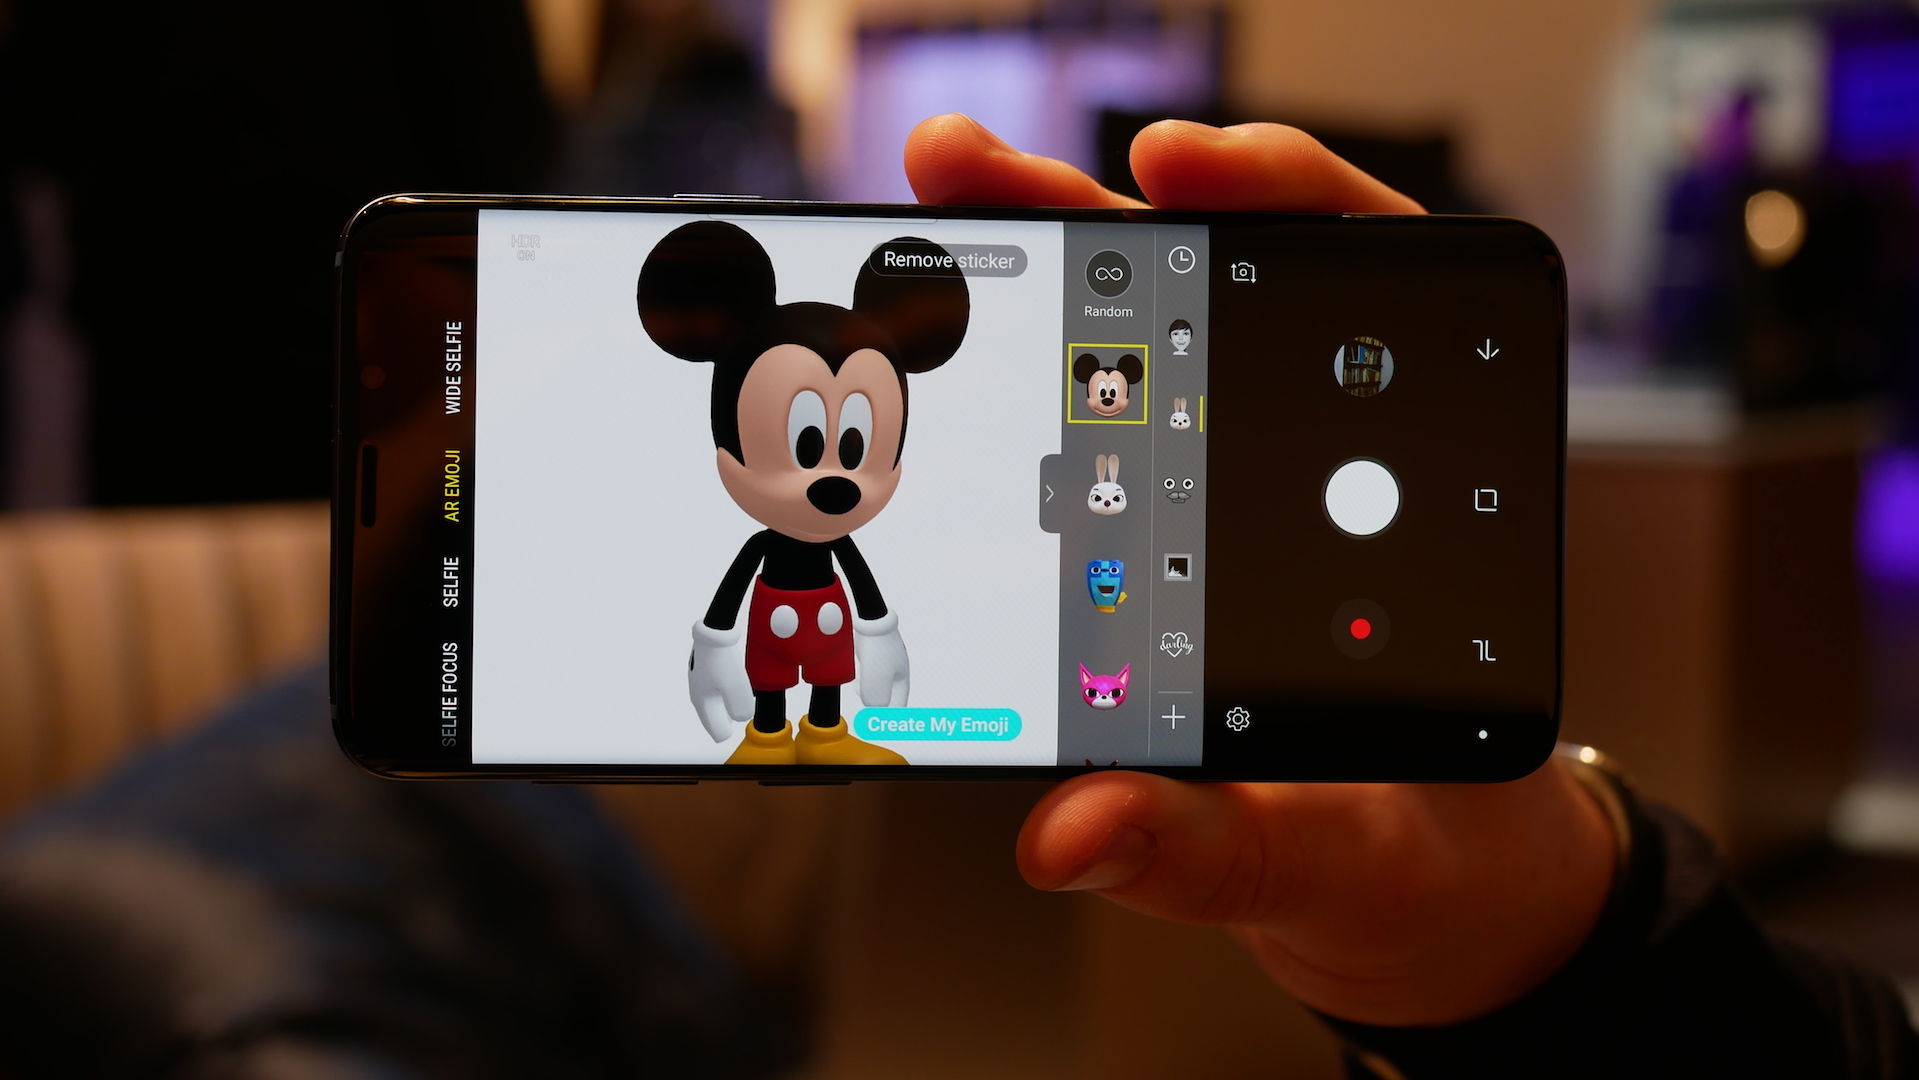 Galaxy S9 AR Emoji explained: how to create and use them